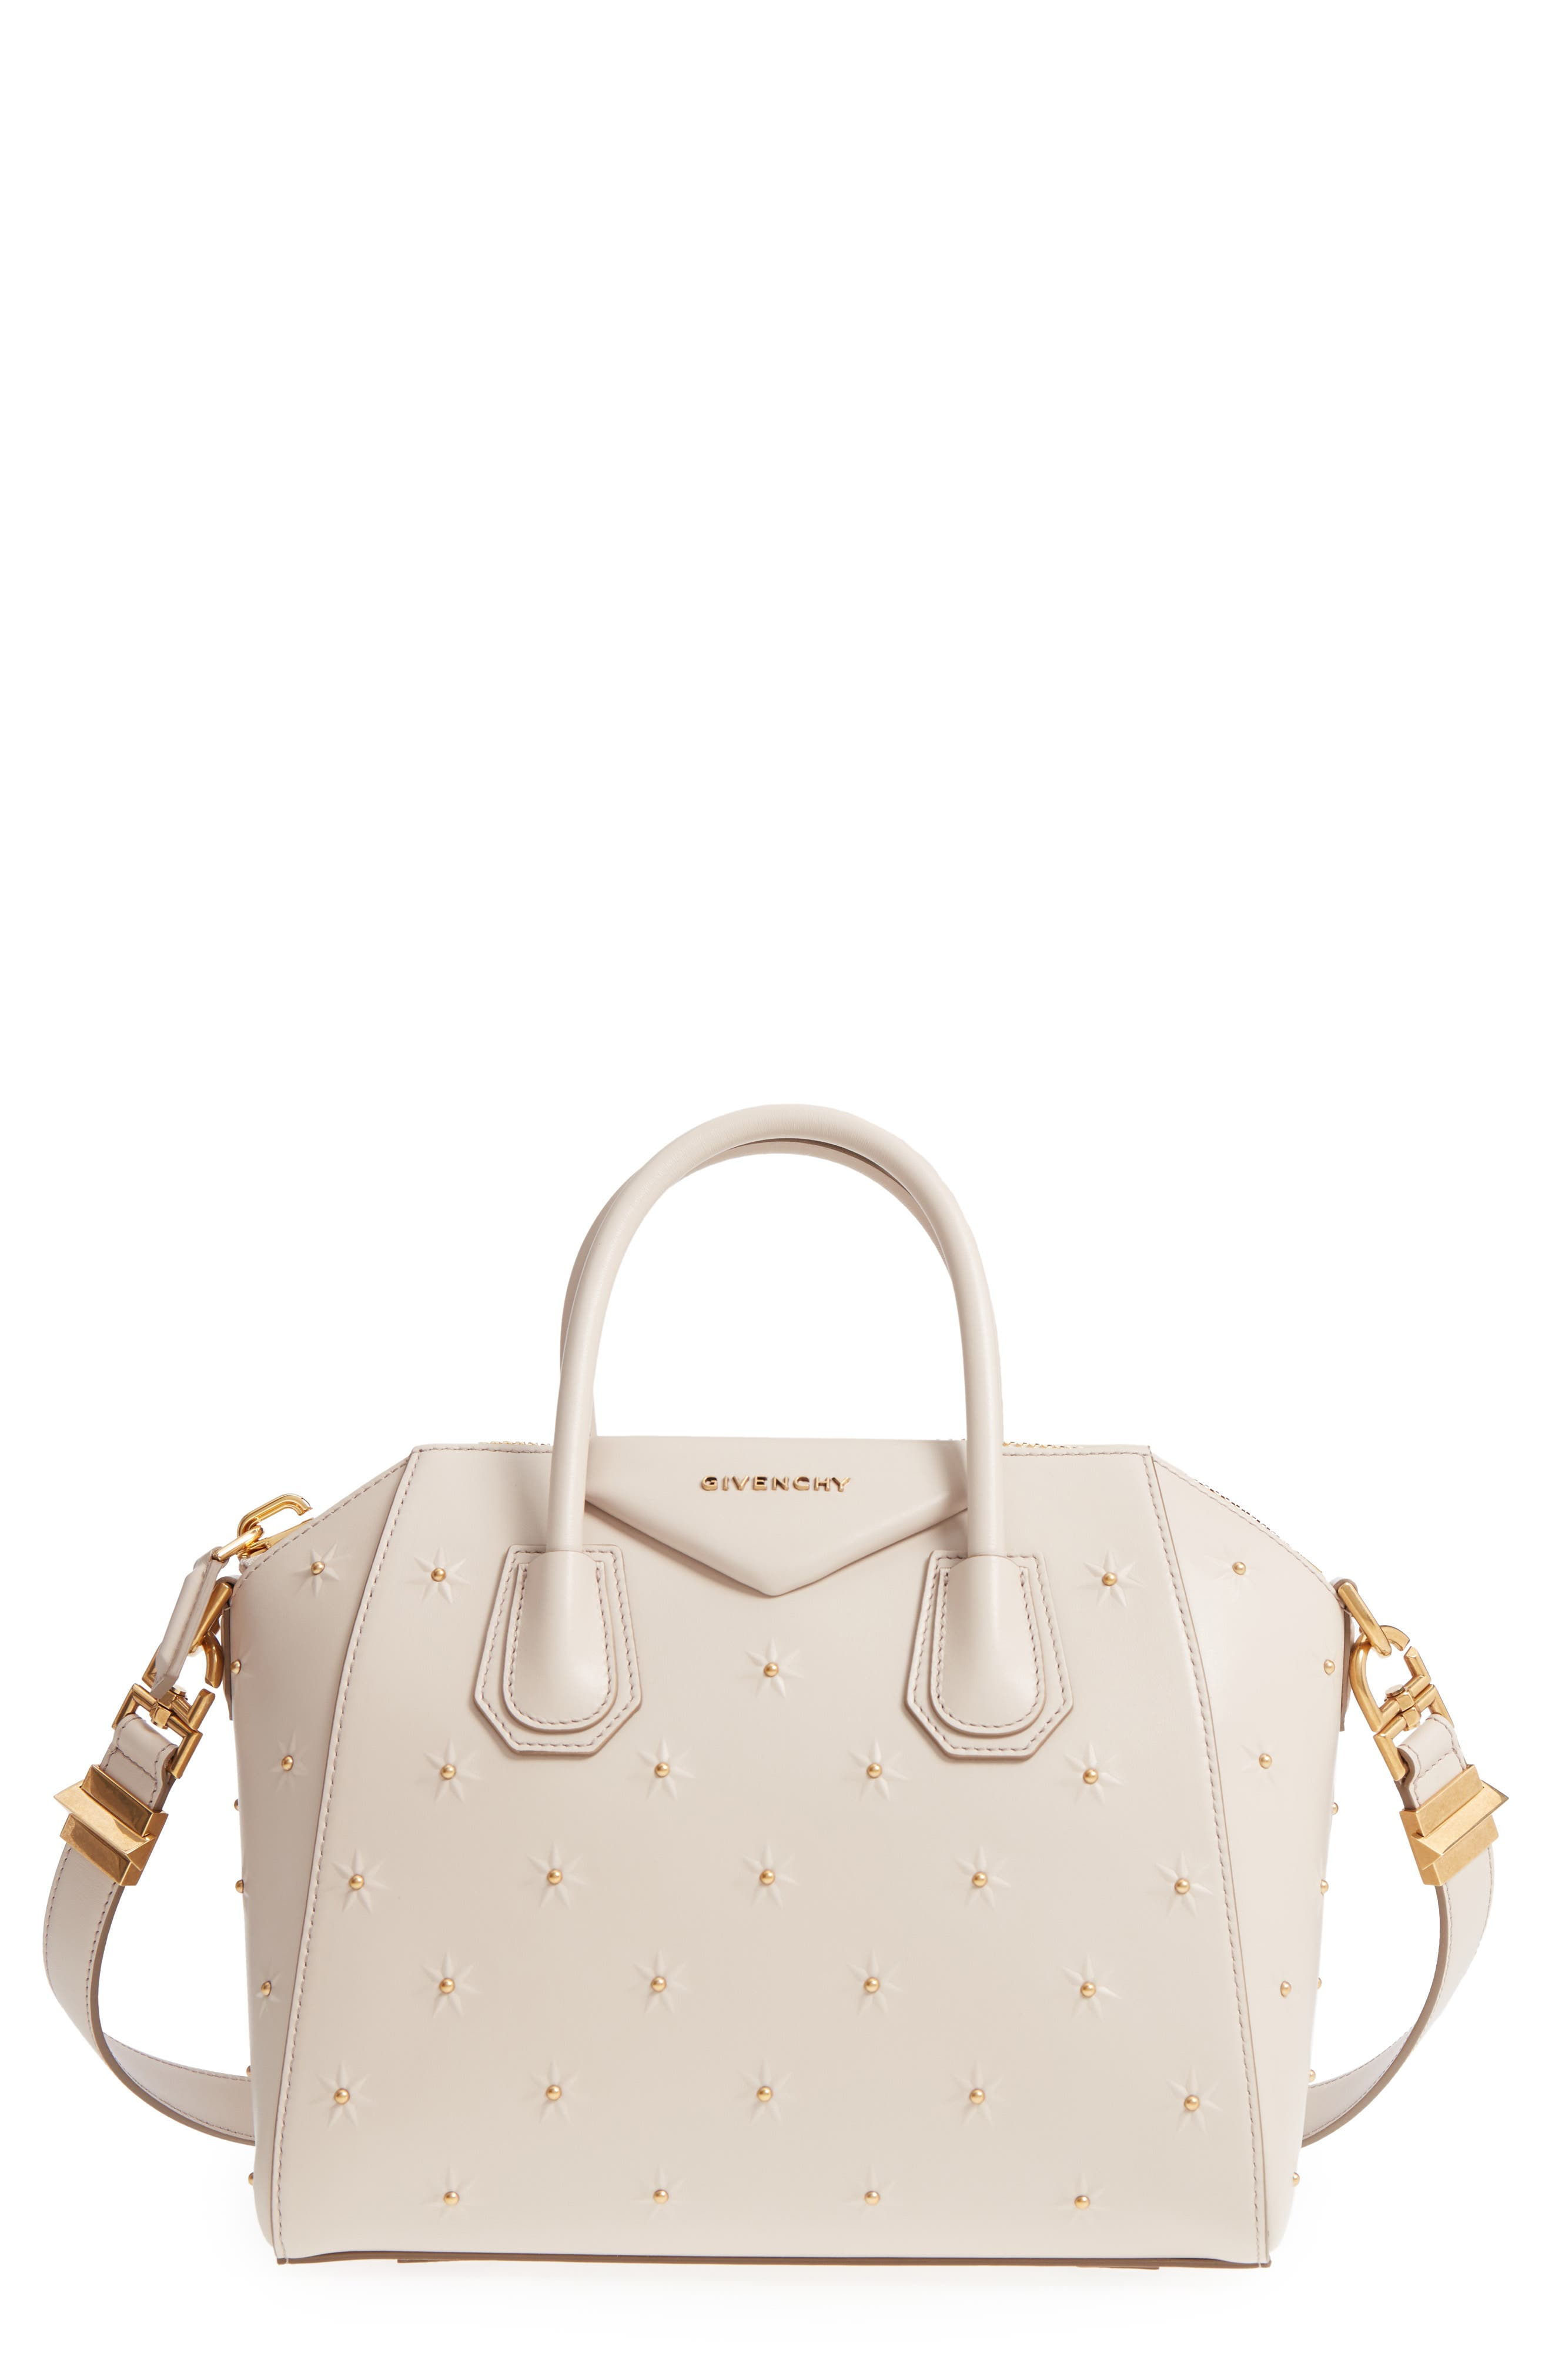 Givenchy Small Antigona Embellished Leather Satchel